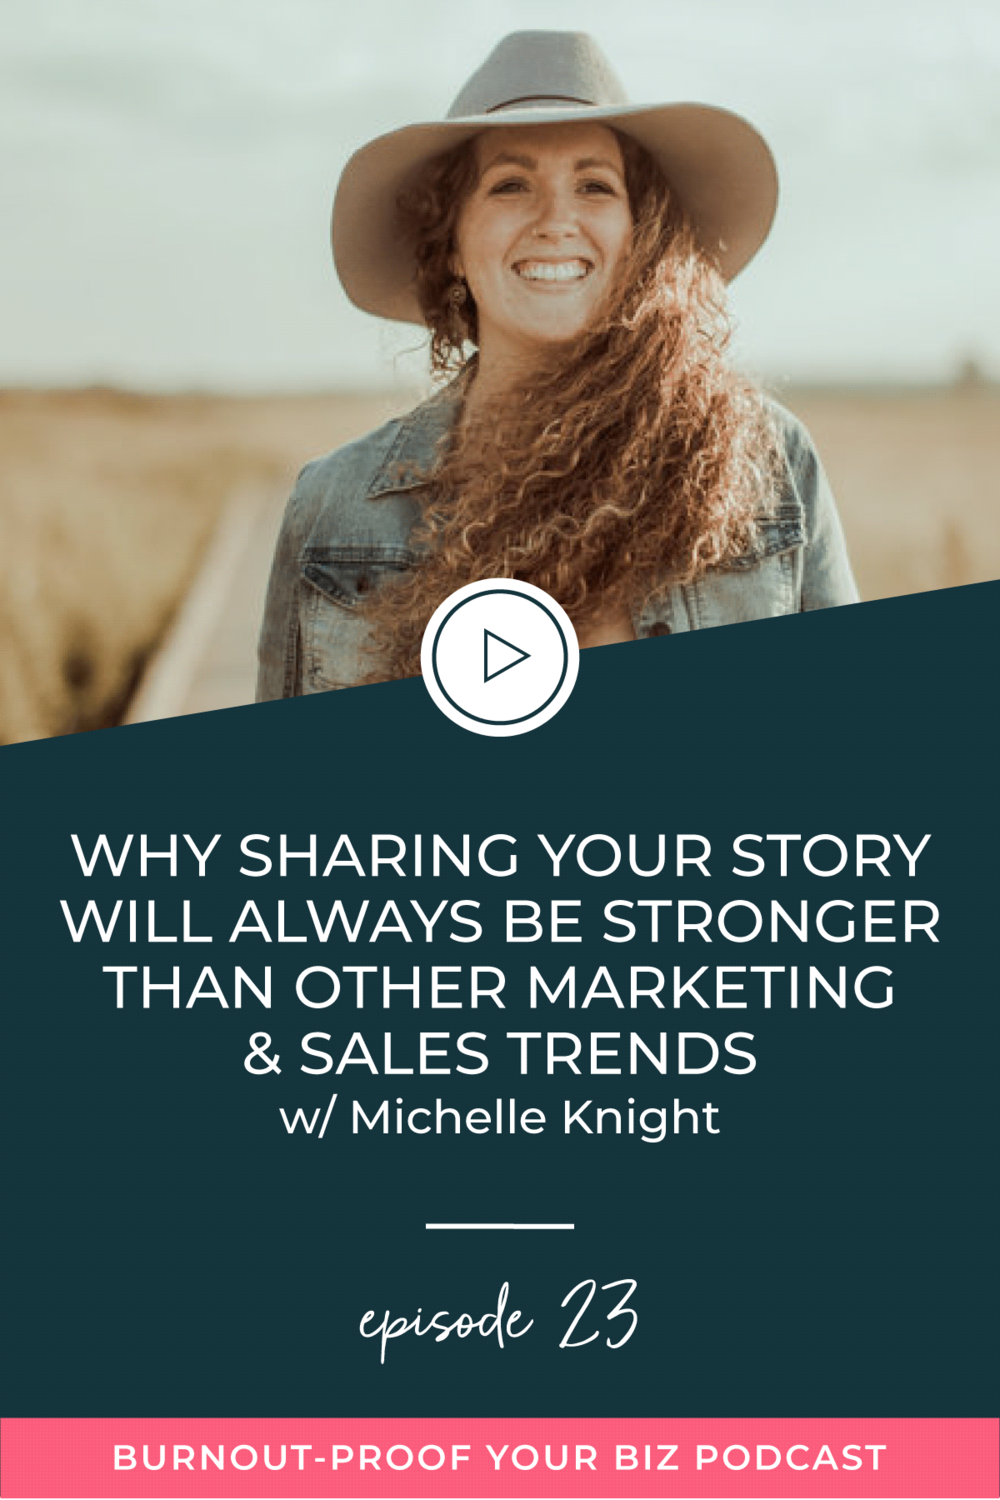 Burnout-Proof Your Biz Podcast with Chelsea B Foster | Episode 023 - Why Sharing Your Story Will Always Be Stronger Than Other Marketing & Sales Trends with Michelle Knight | Learn how to run your biz and live your dream life on your own terms without the fear of burnout.